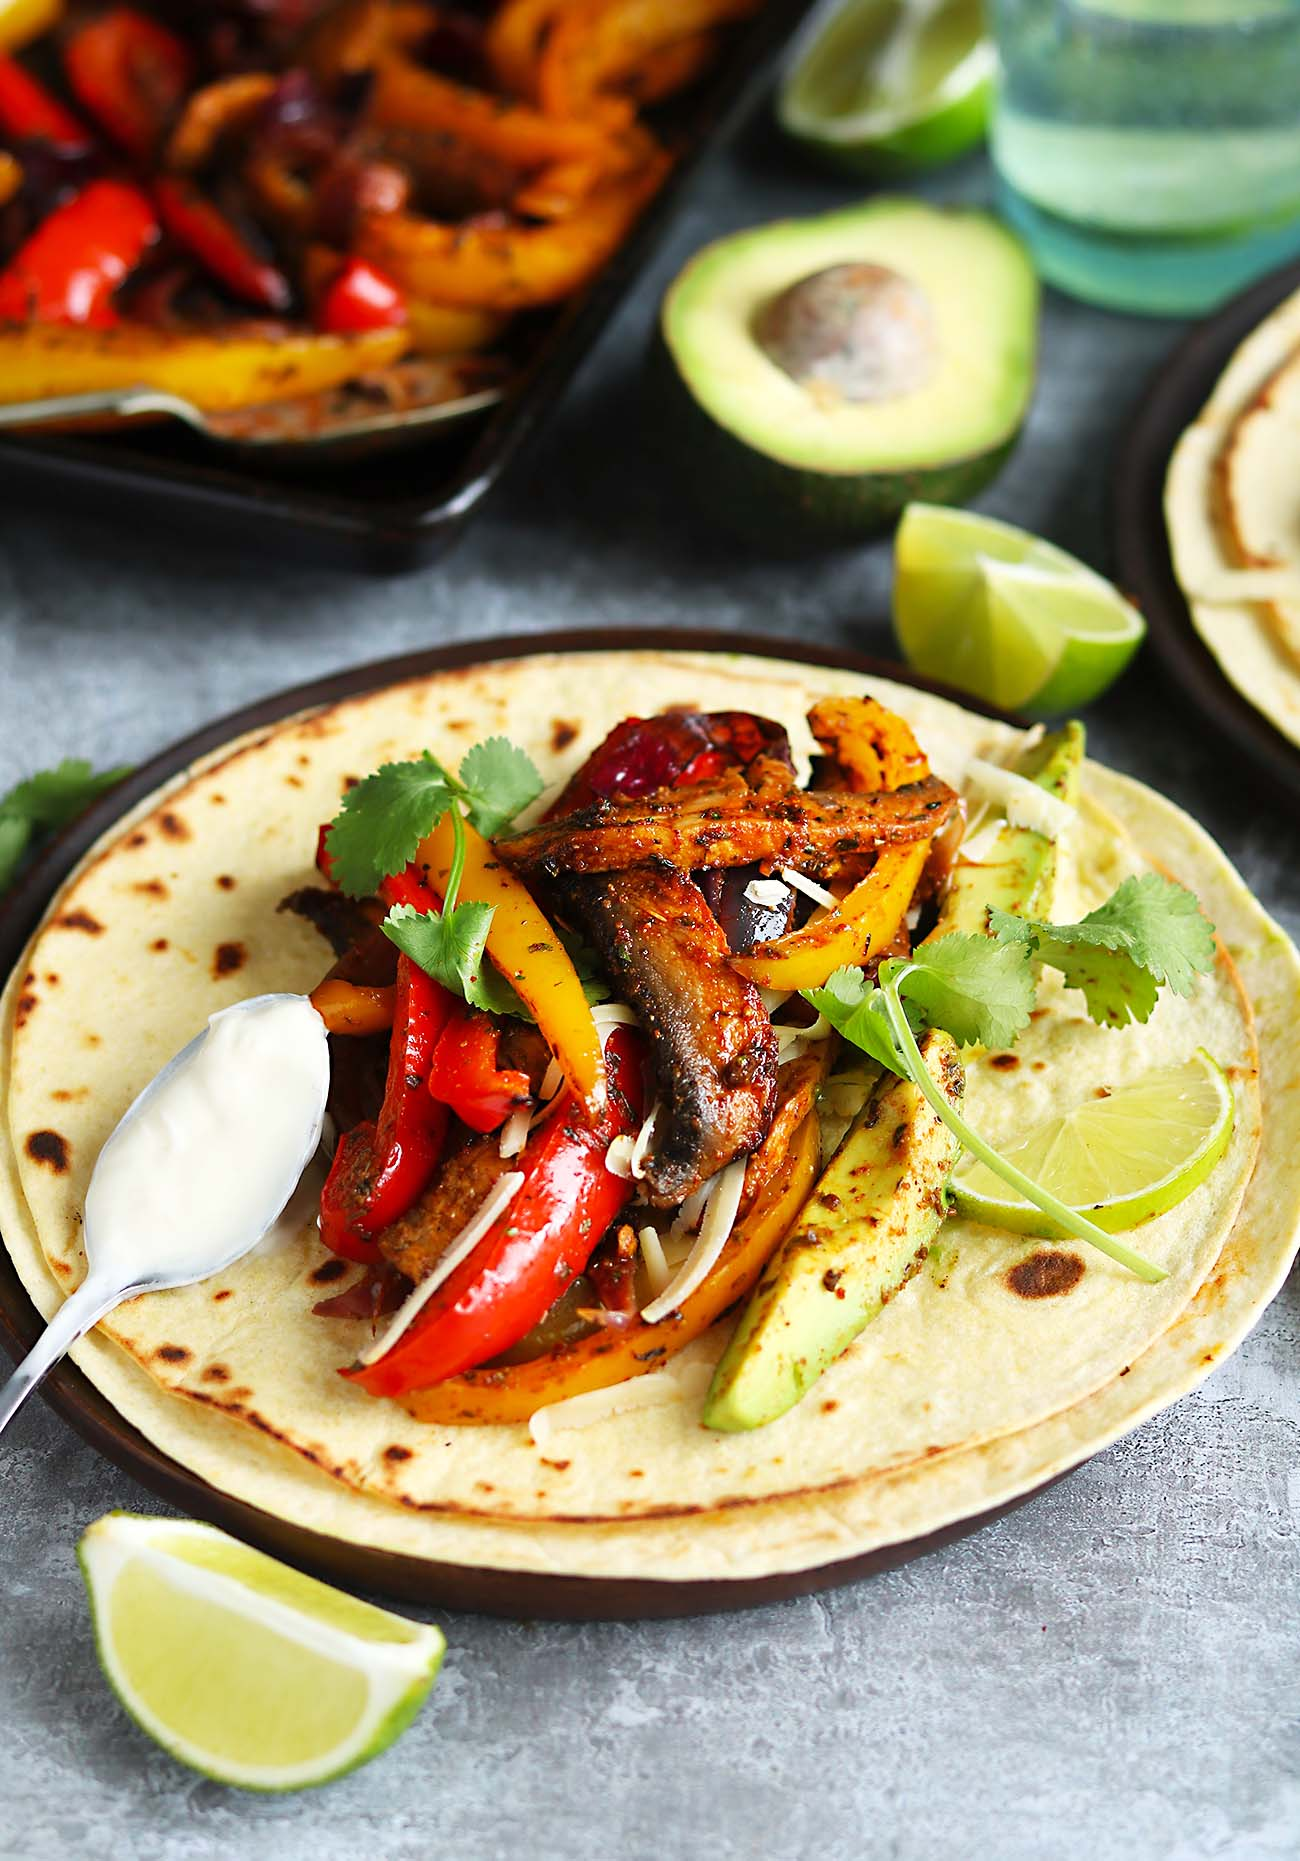 Mushrooms with peppers, avocado and coriander, in a tortilla with cheese and sour cream.